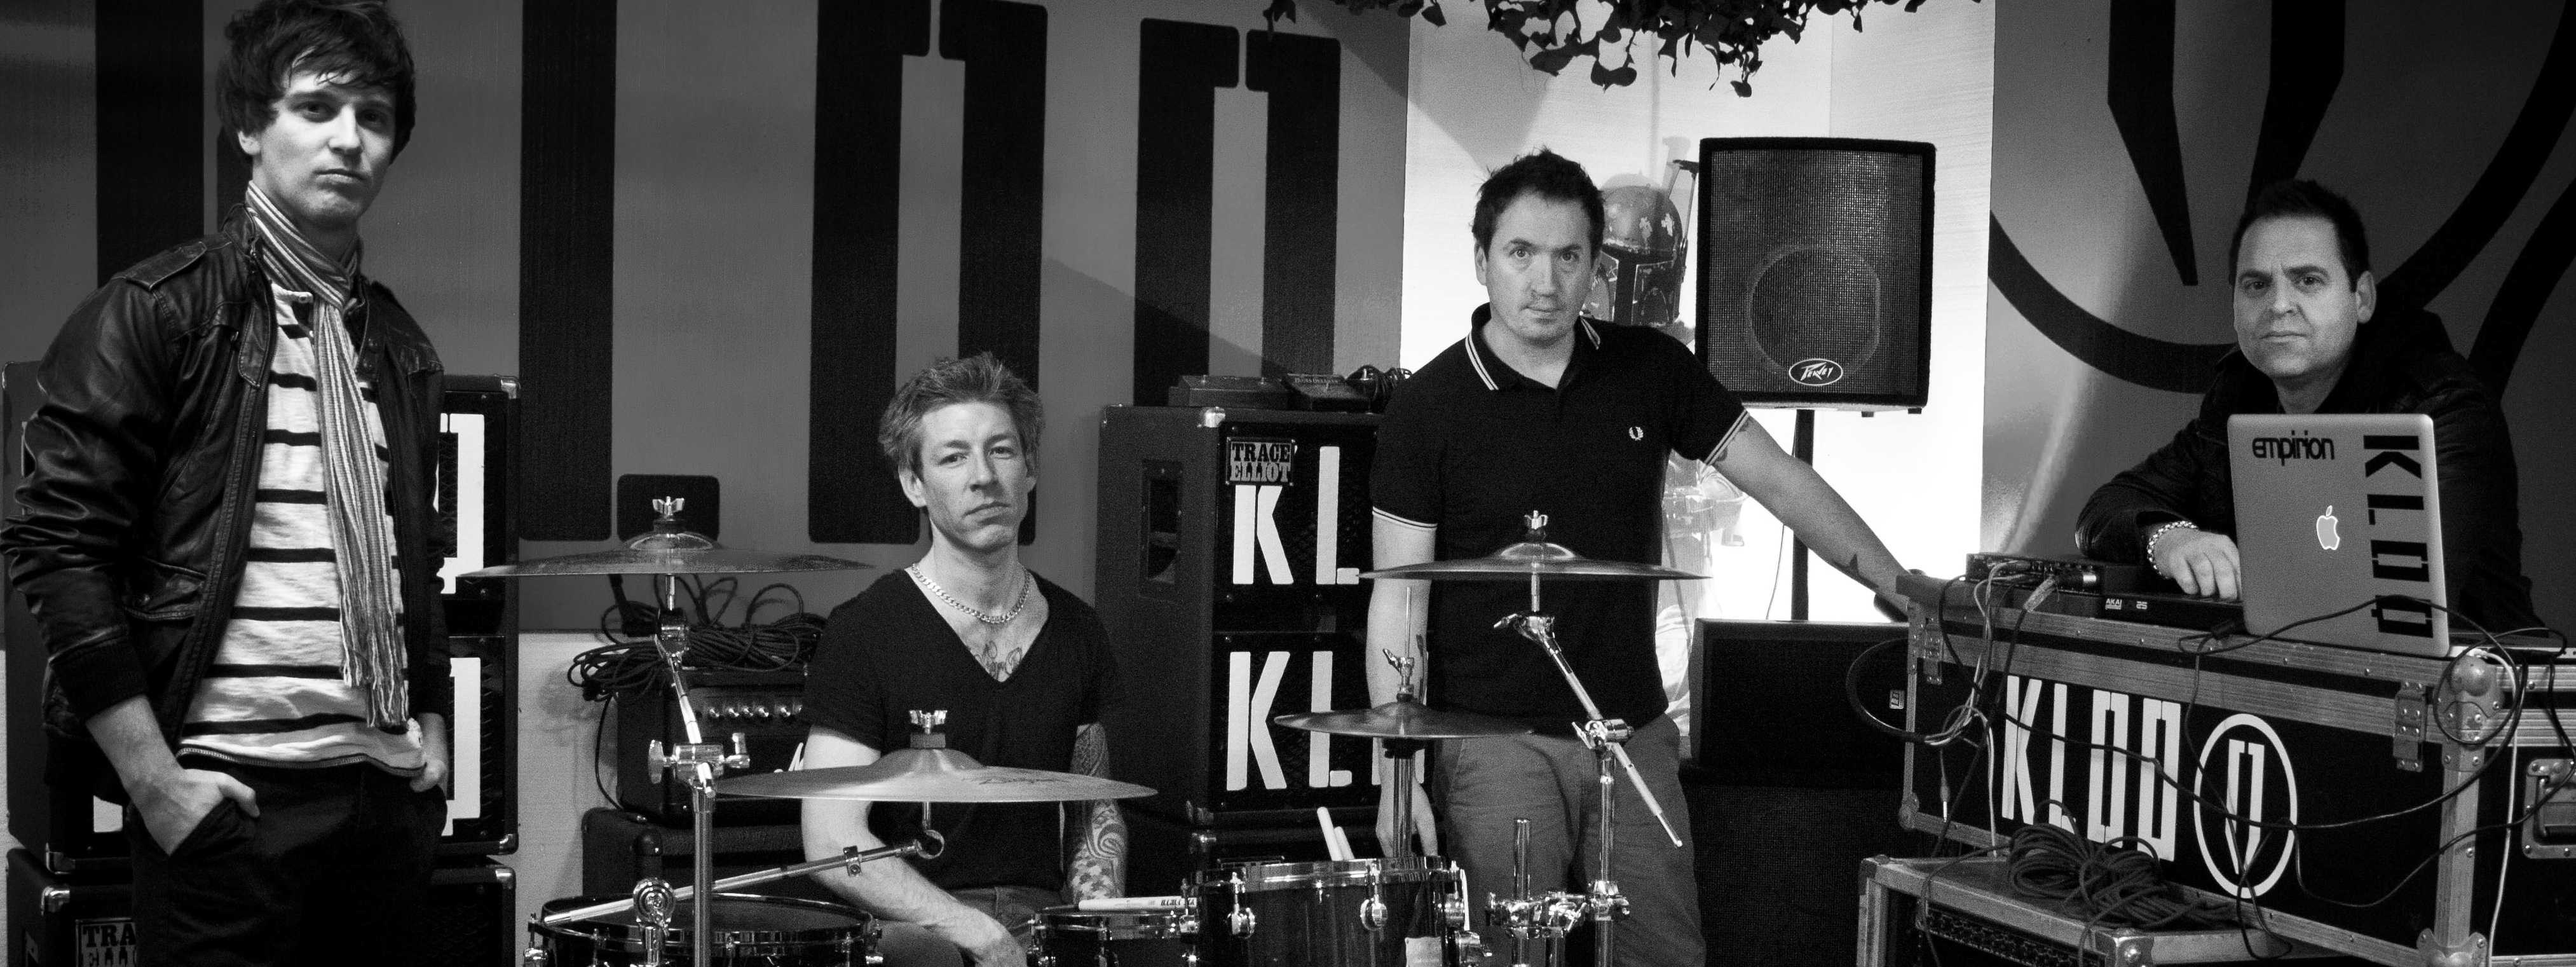 Kloq to release exciting Album 'Begin Again', The Non-Modern Man | Unfashionablemale